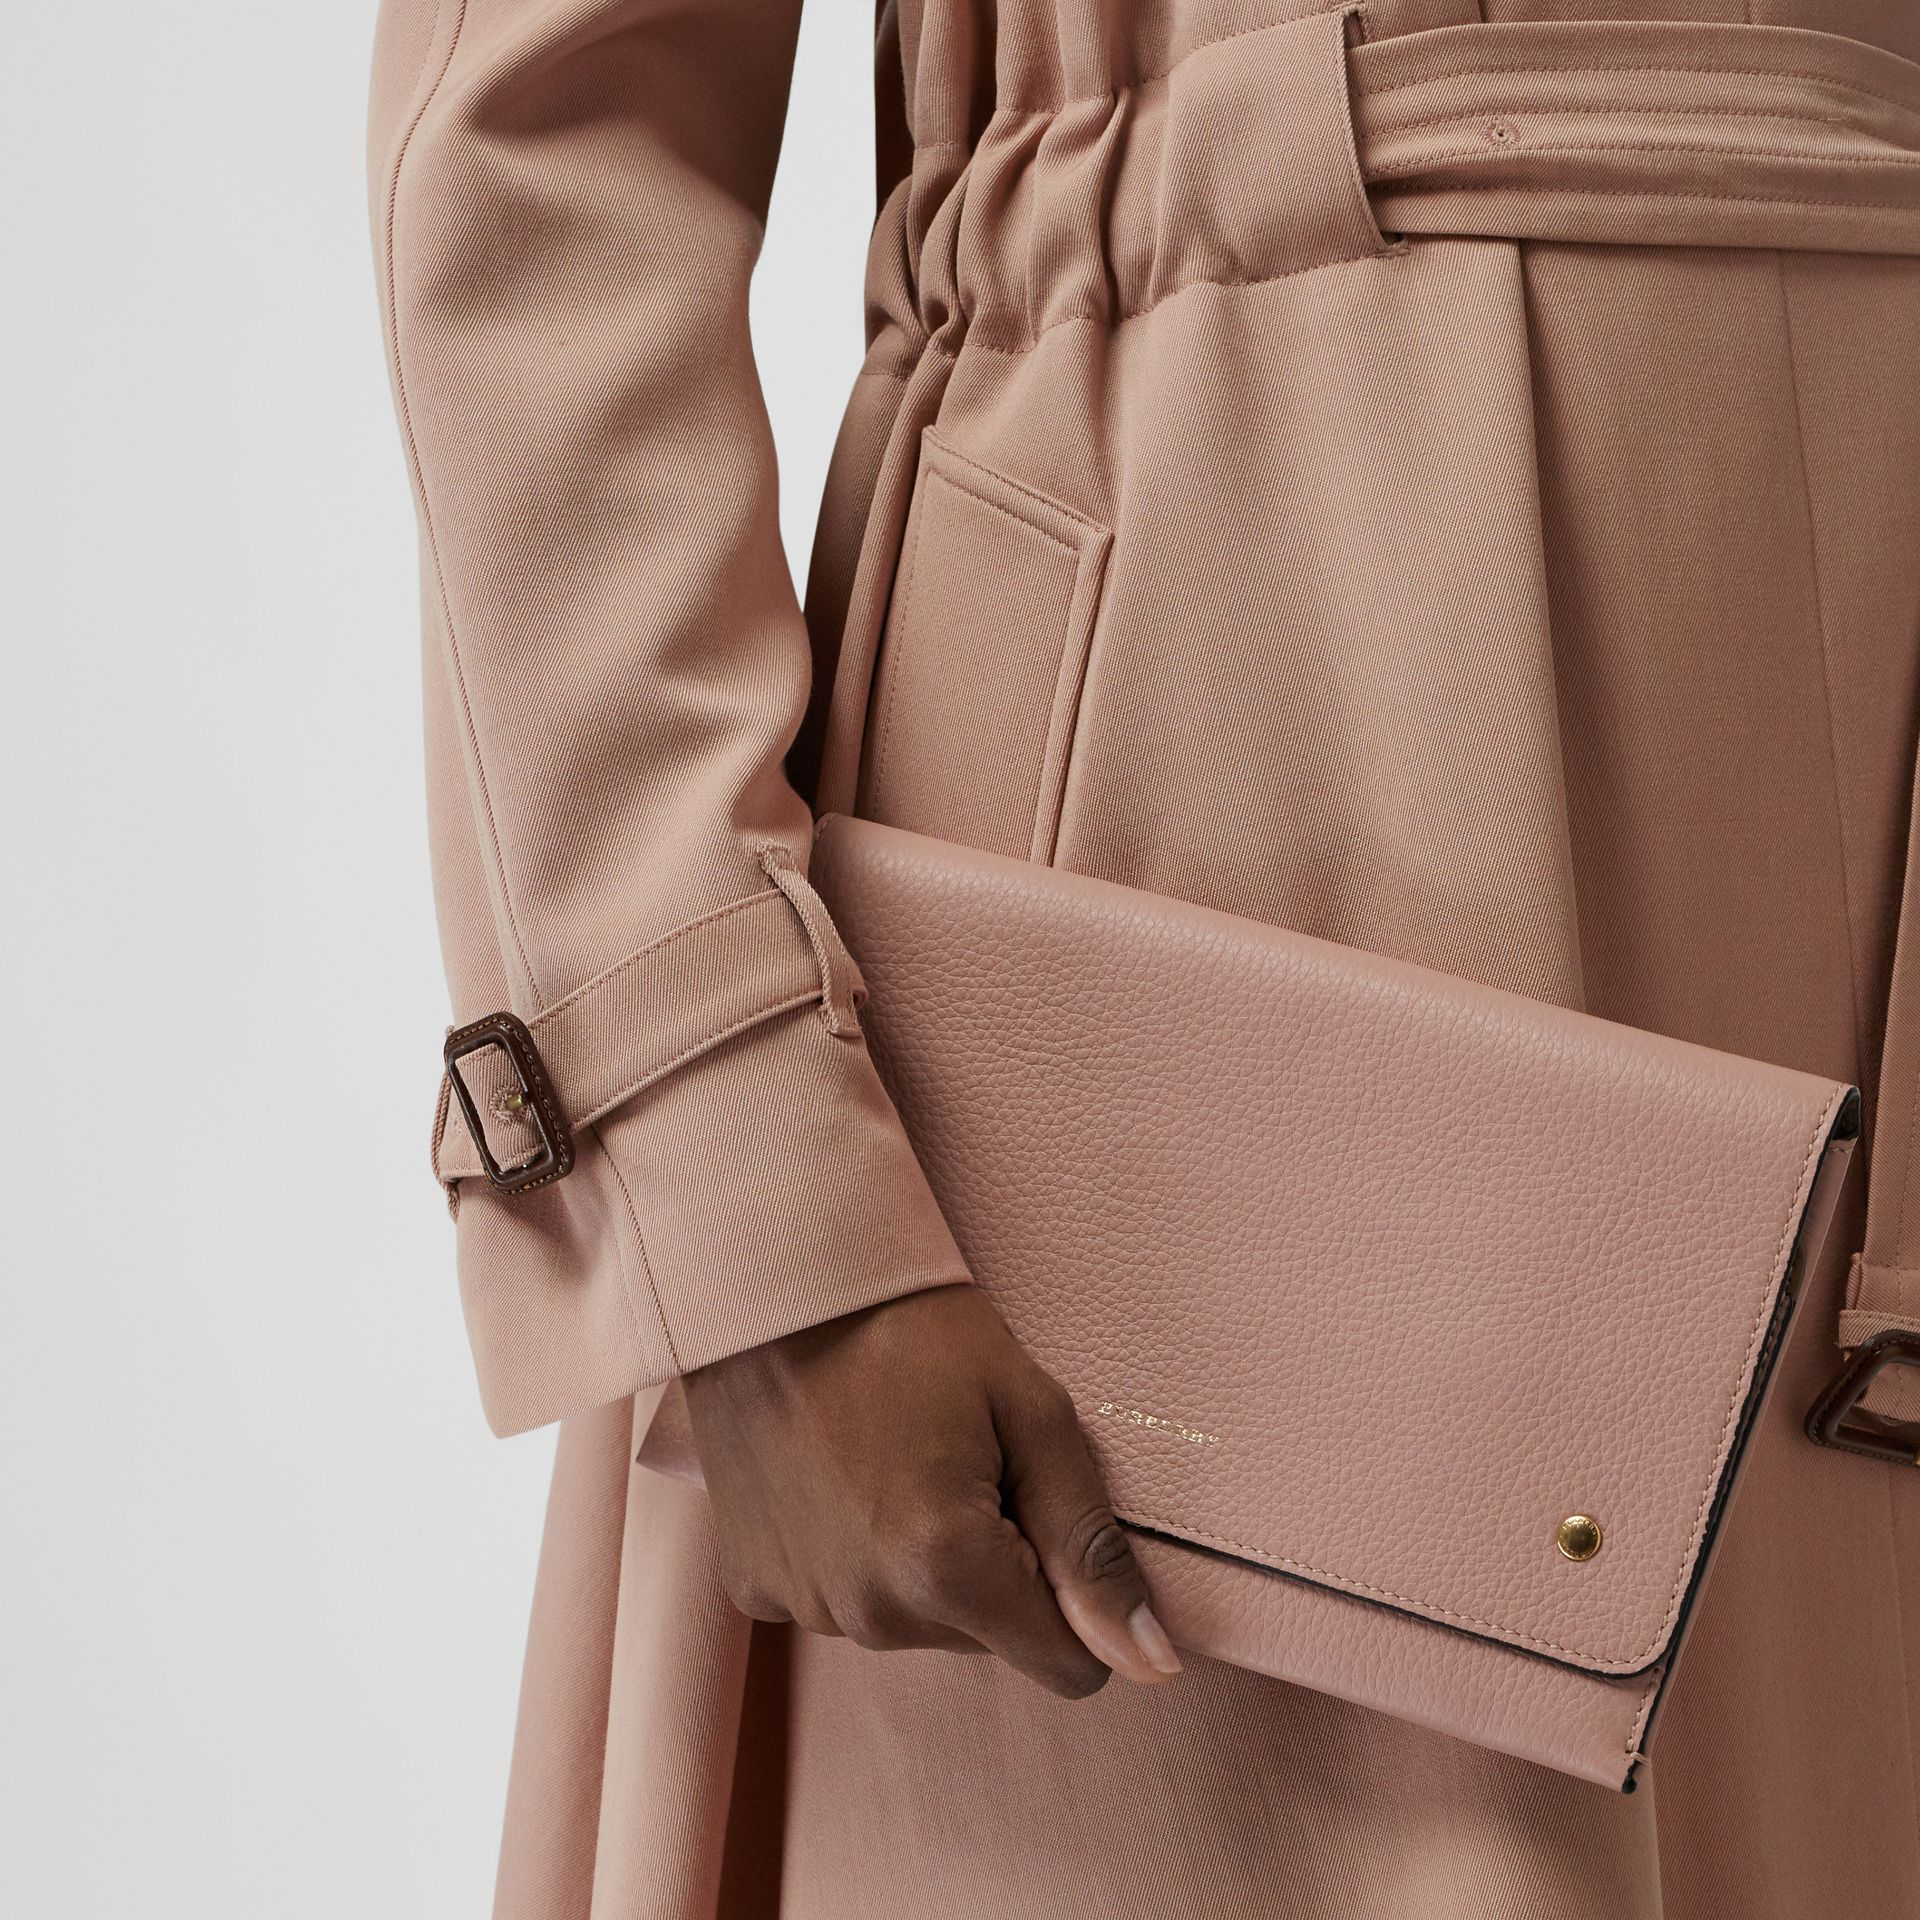 Two-tone Leather Wristlet Clutch in Ash Rose - Women | Burberry - gallery image 3